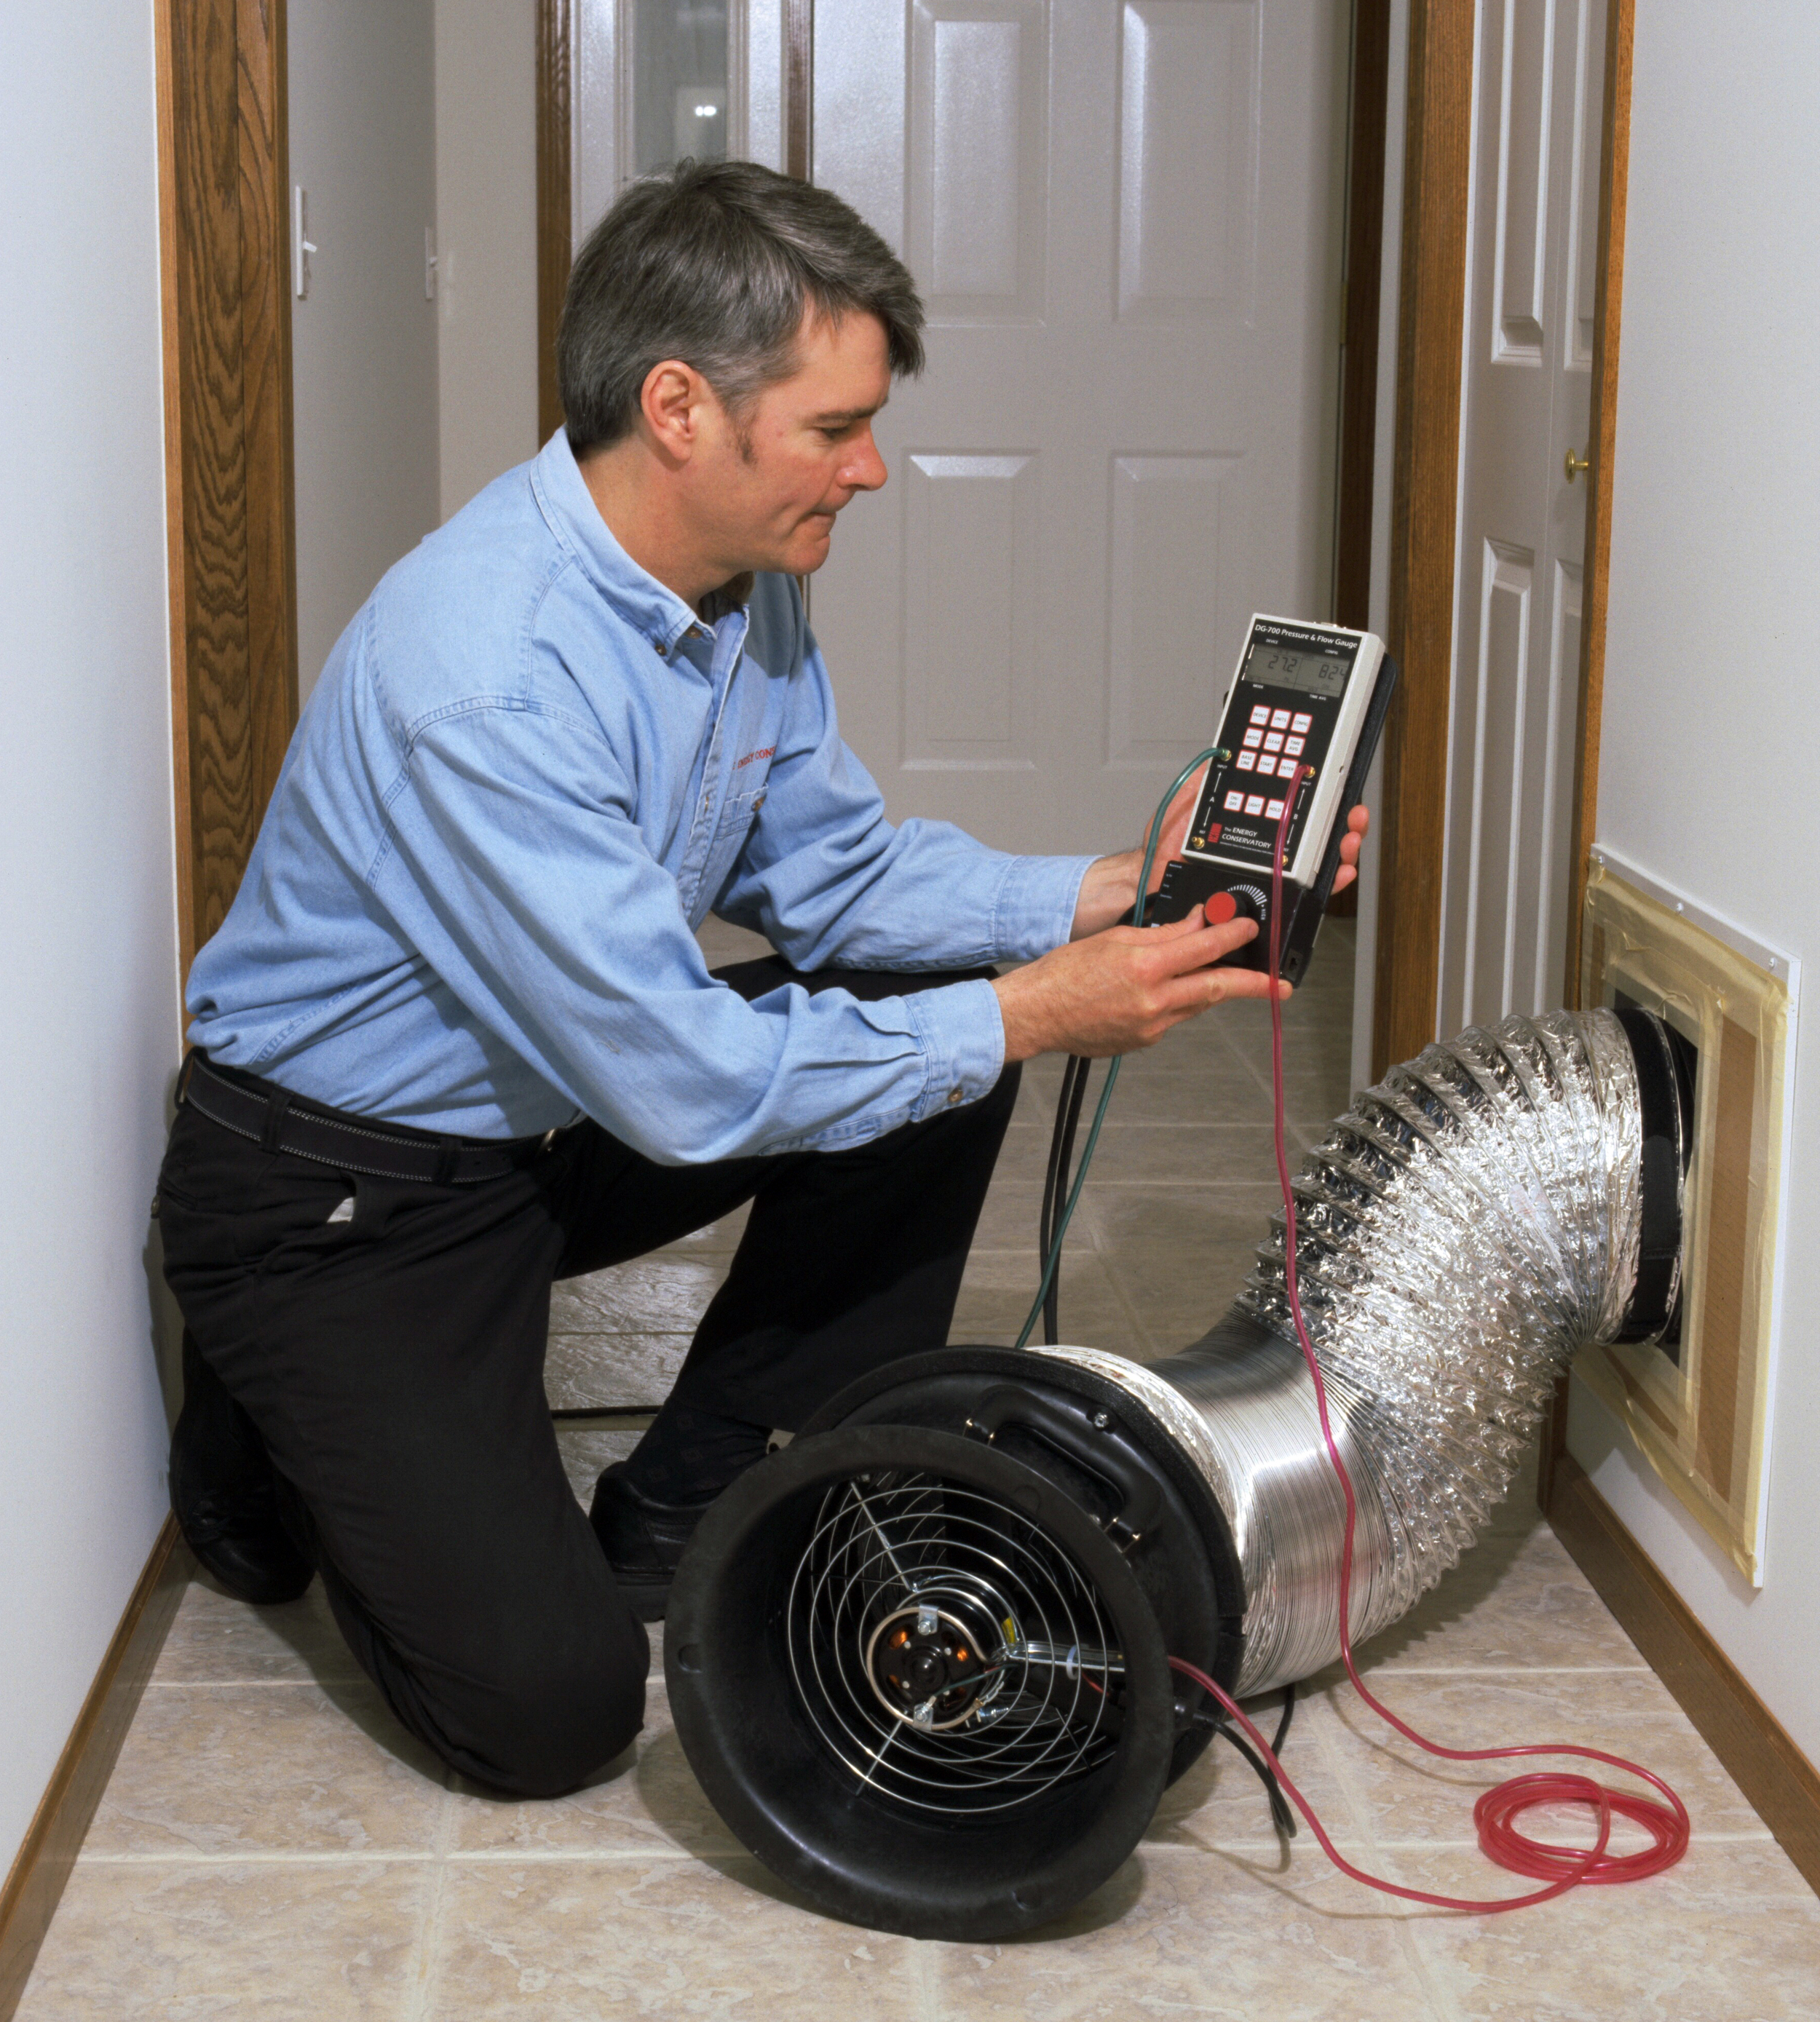 If you suspect mold growth, have a qualified inspector investigate for water leaks